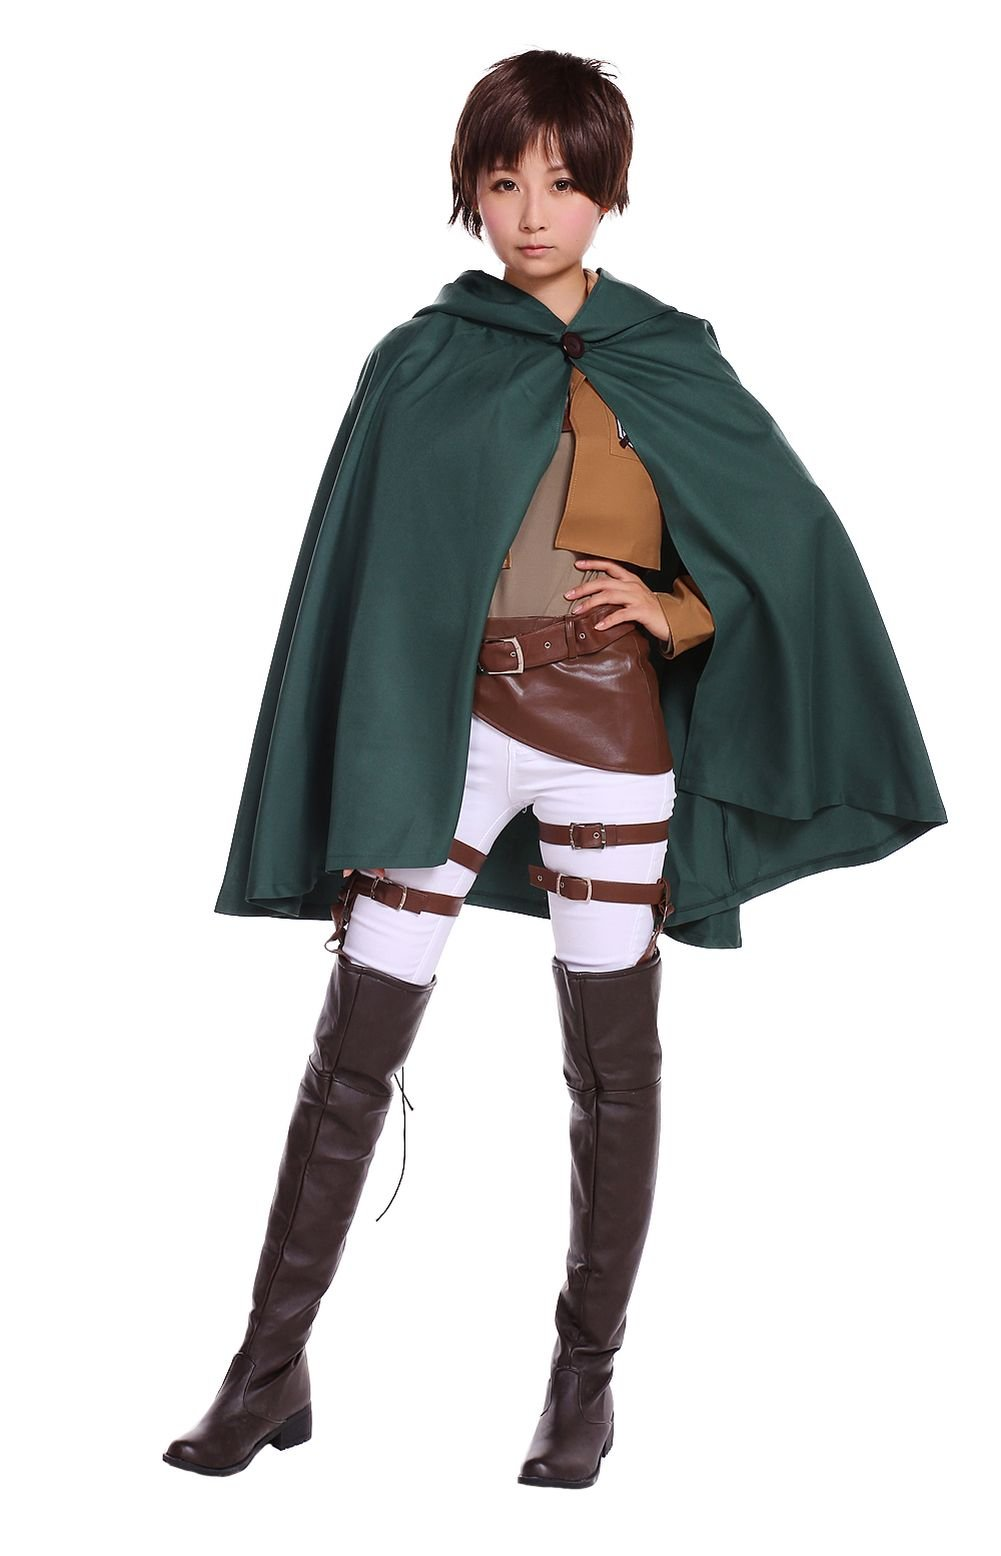 COSROOM Attack on Titan Survey corps Eren Jaeger Cosplay Costume with cloak Female S